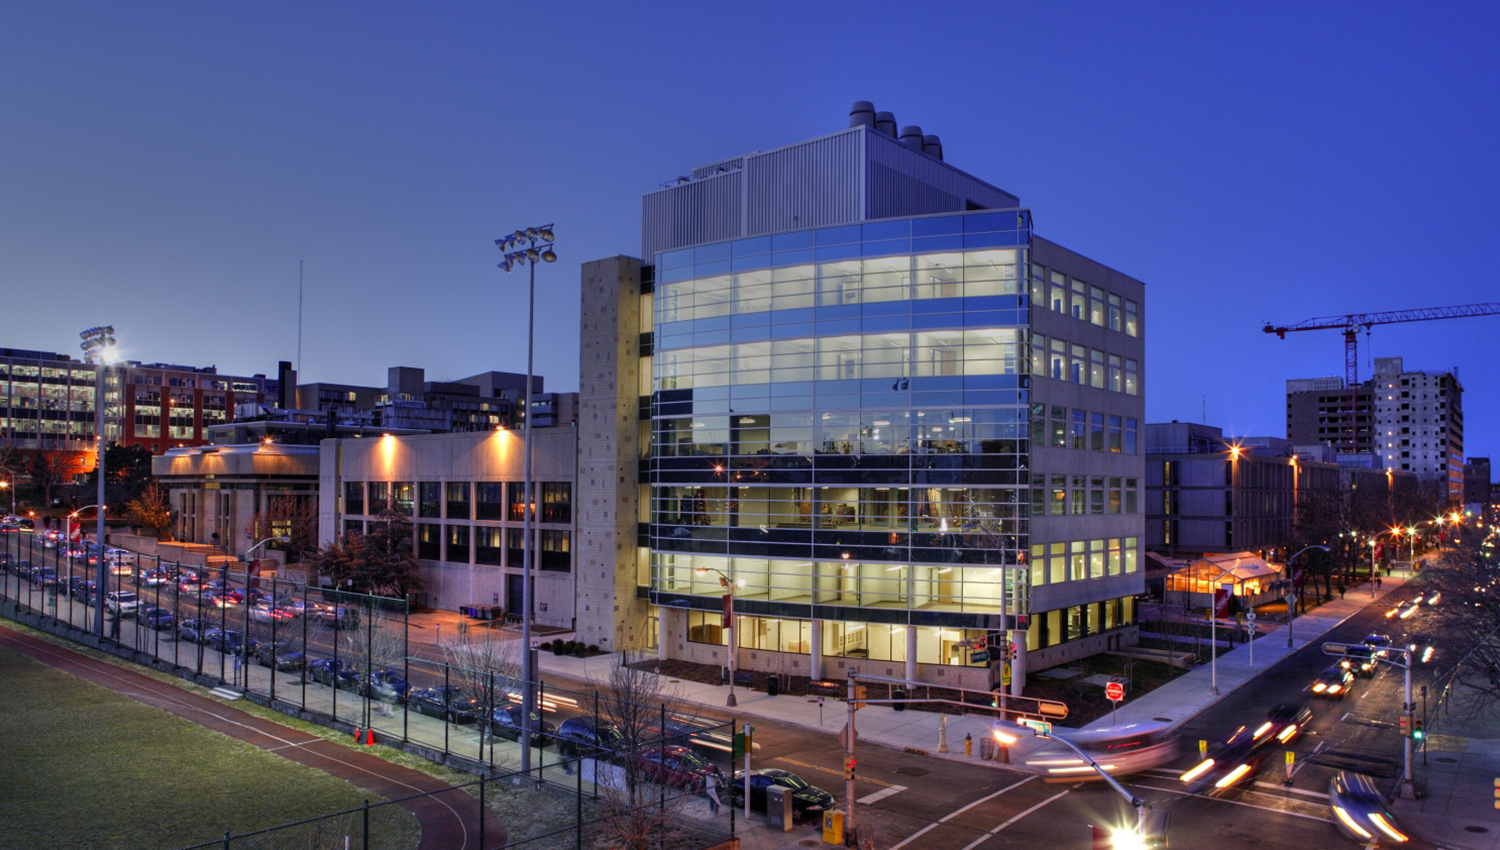 Rutgers University Life Sciences Center